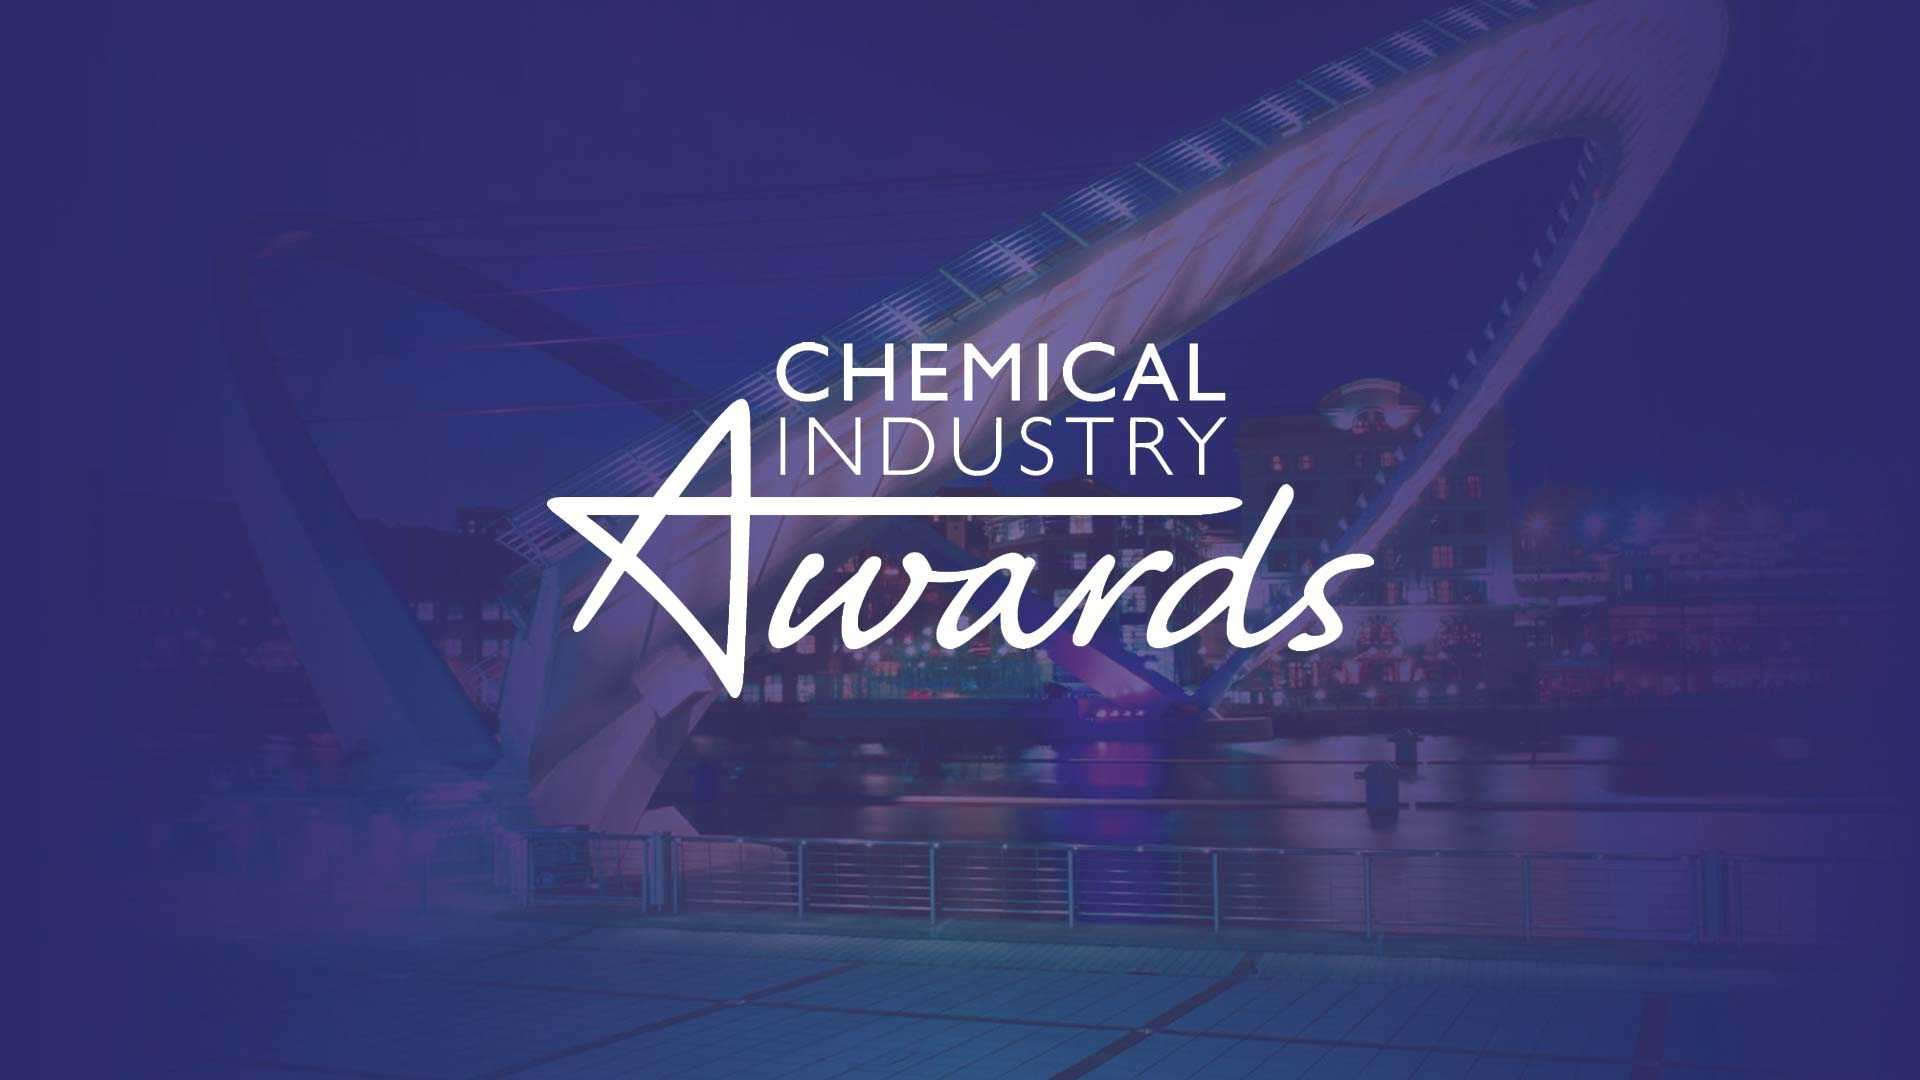 CPI is a finalist in the Skills and Chemical Industry Service Provider categories at the Chemical Industries Association Awards.